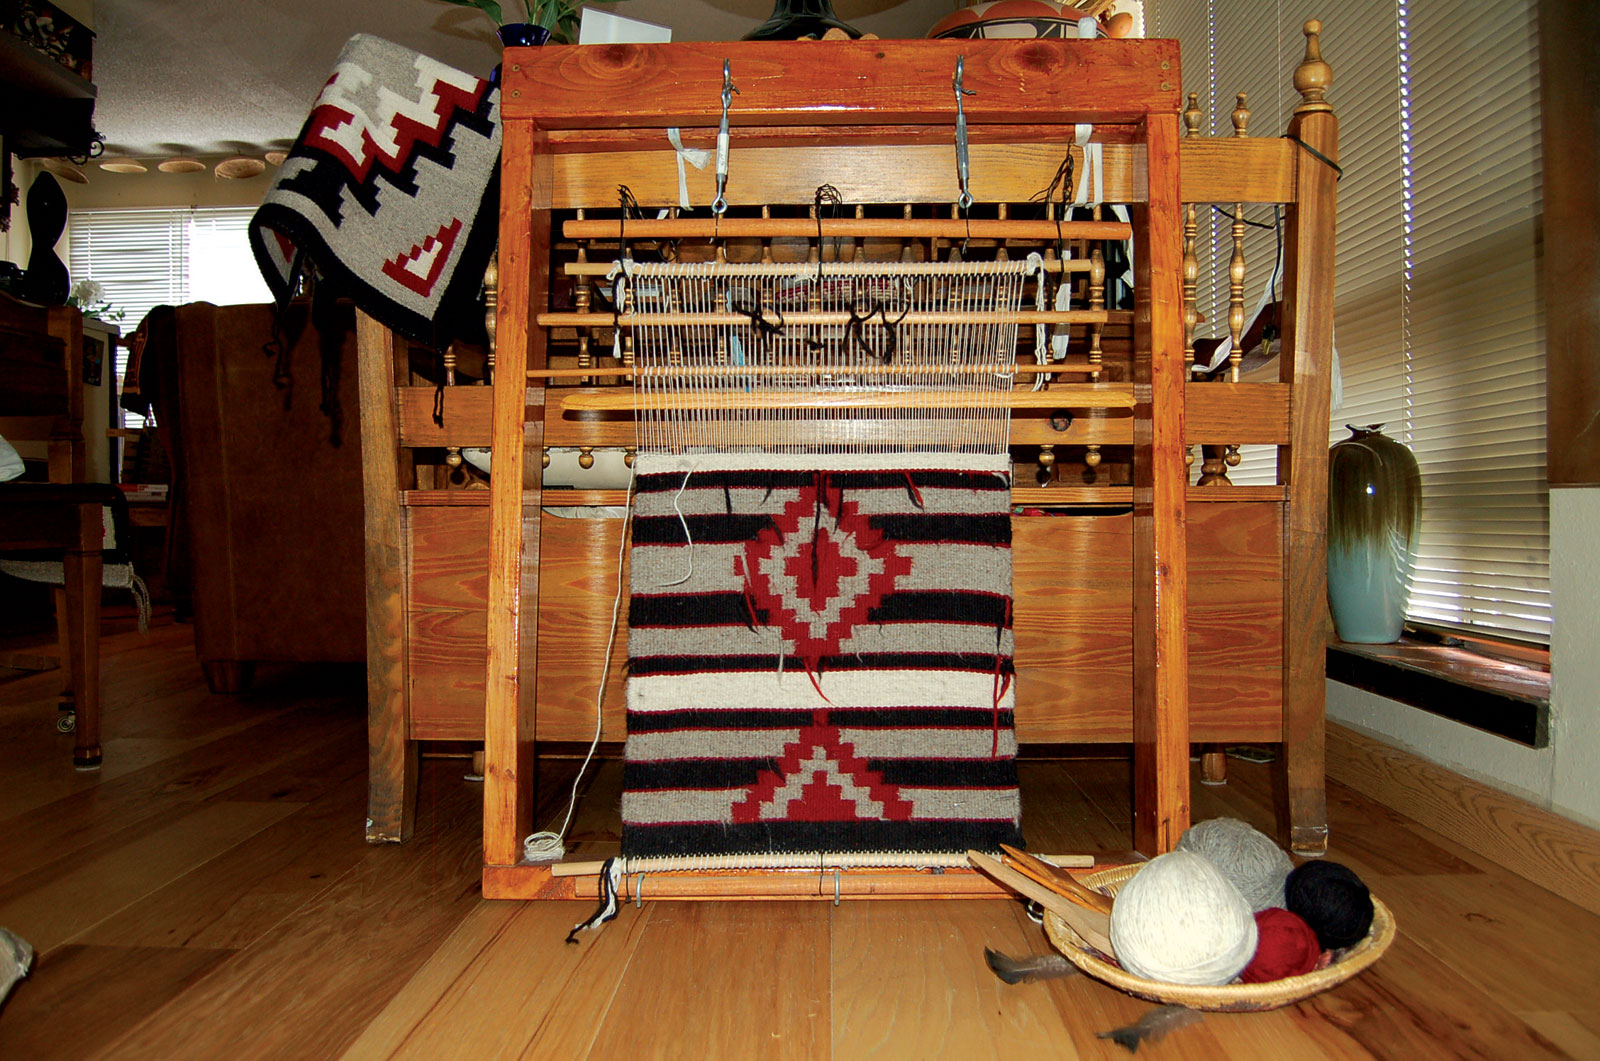 SMALL COTTONWOOD CHIEF'S BLANKET, shown in progress on loom, by Tazbah Gaussoin   of natural dyes, Navajo Churro Sheep wool, 2017.  Photograph by Tazbah Gaussoin.